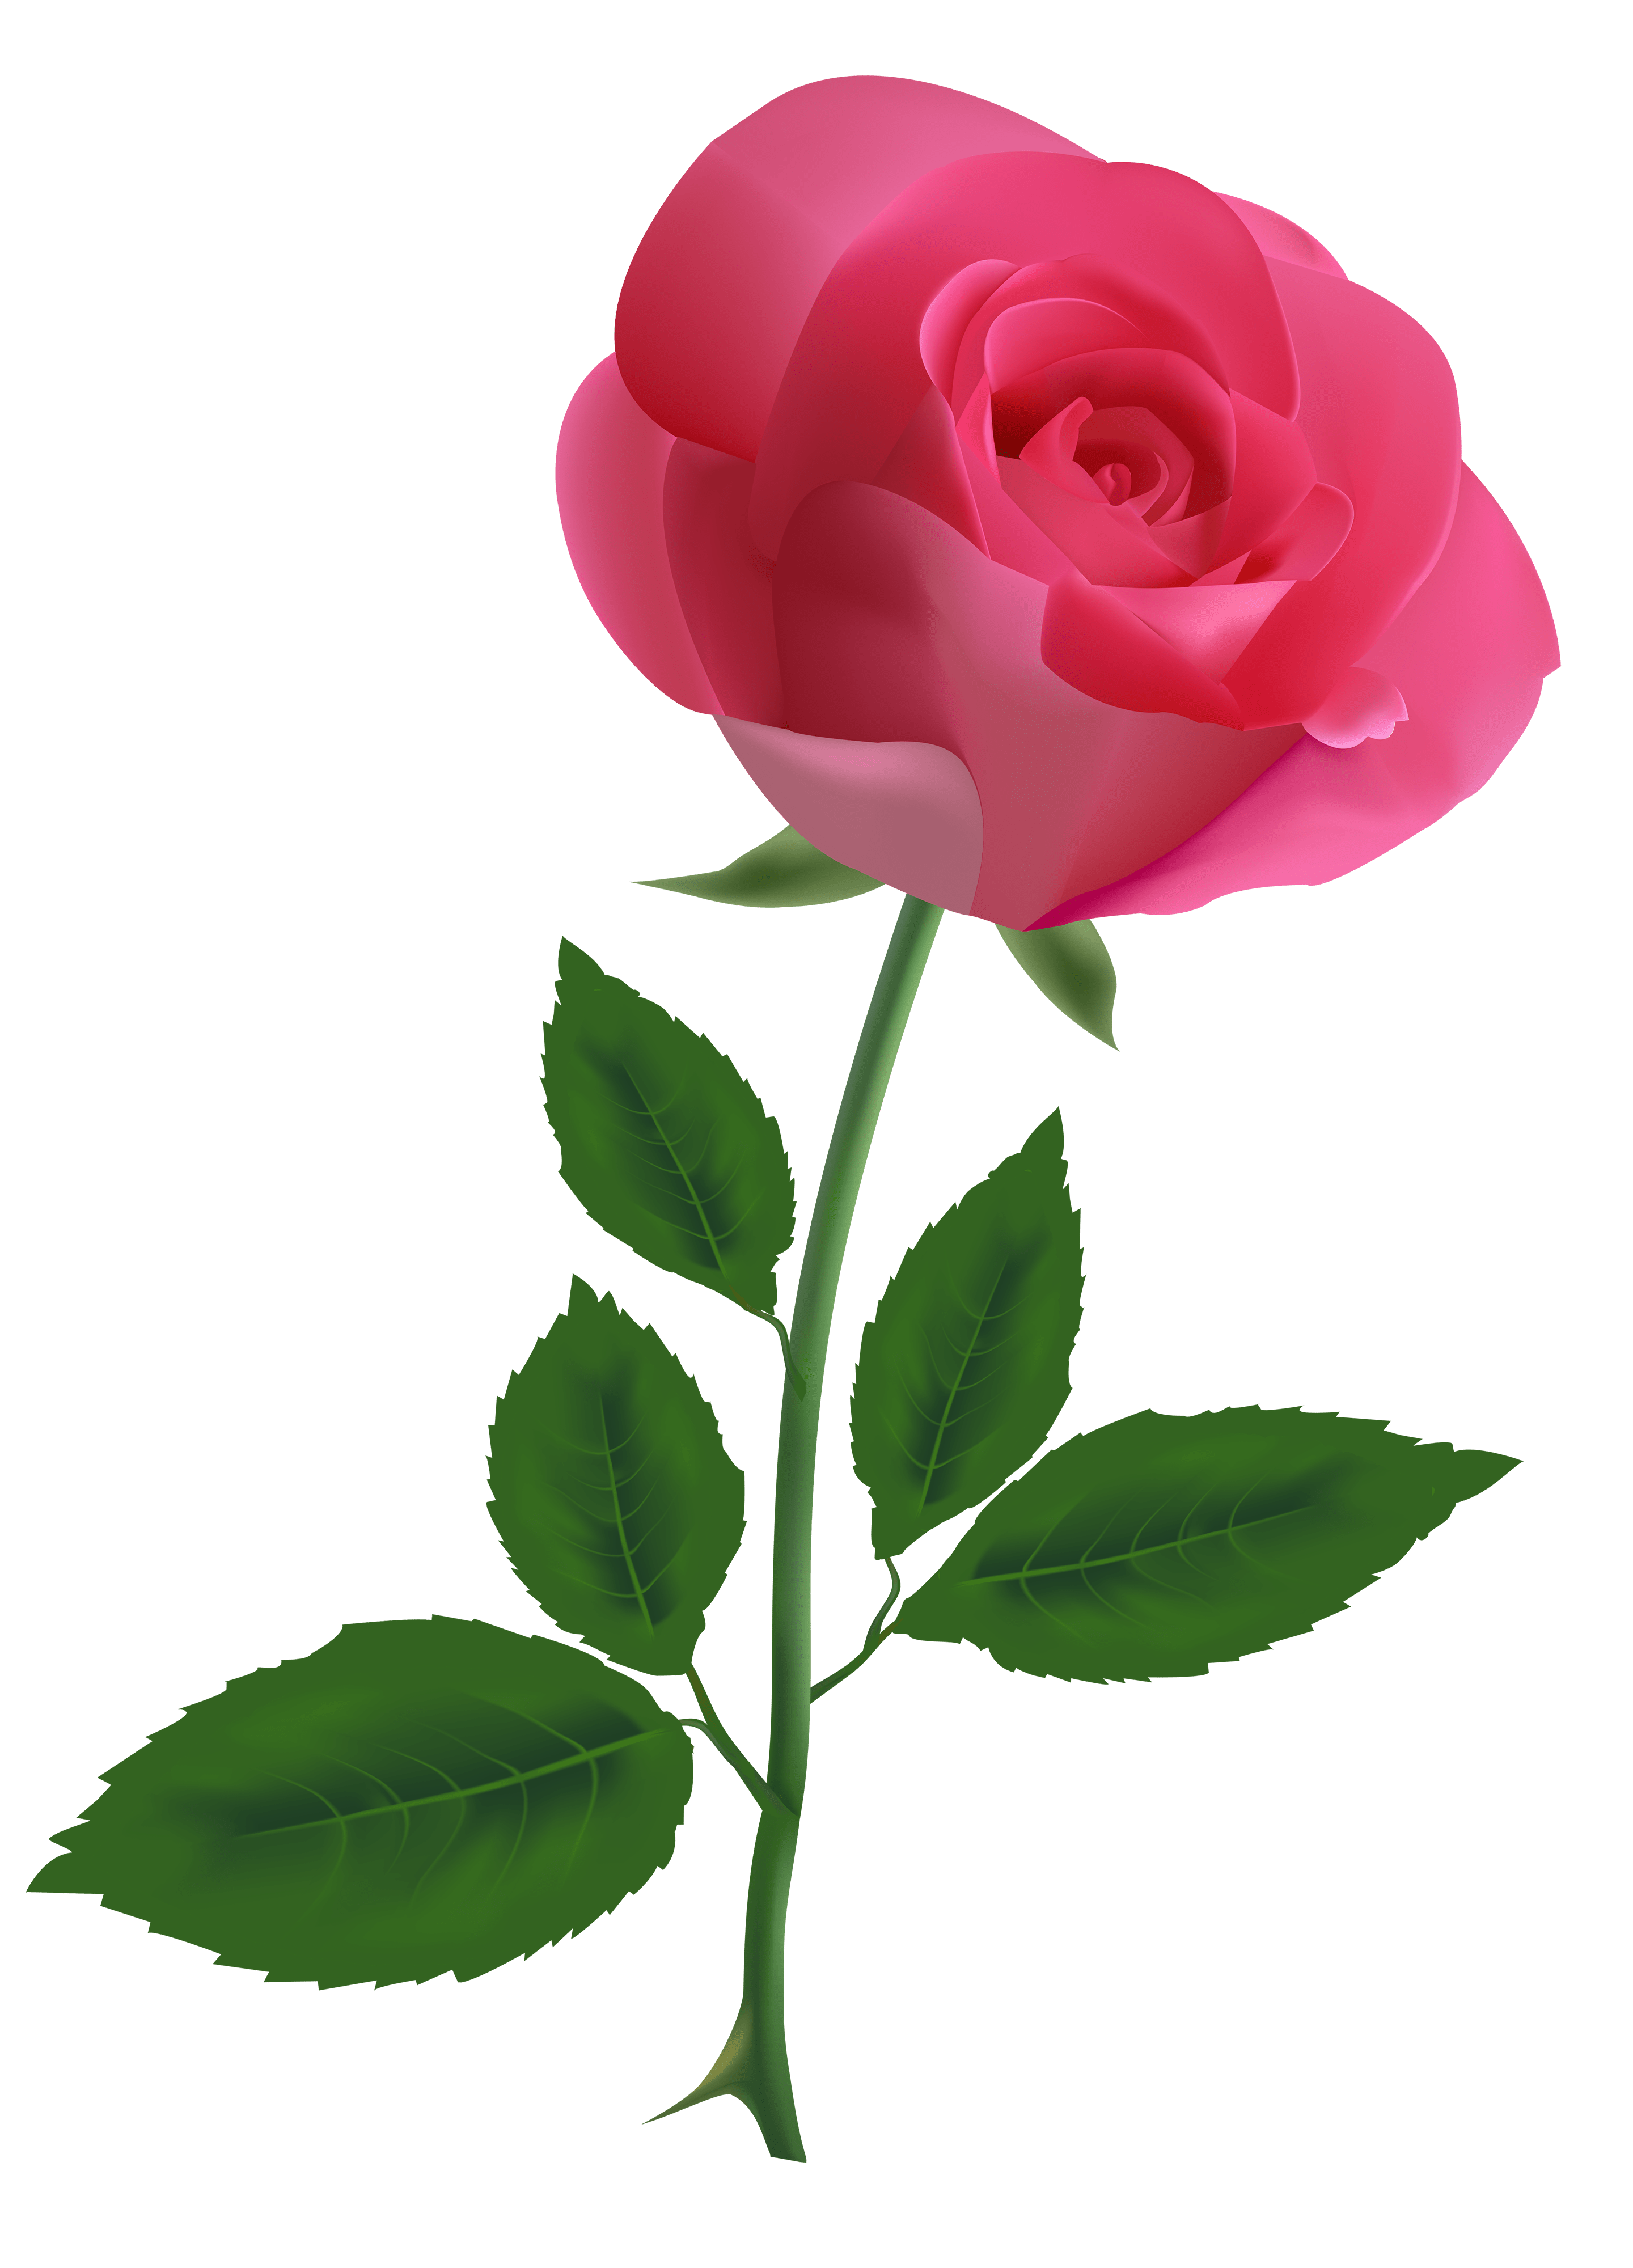 Pfingstrosen Clipart Hoontoidly Single Pink Rose Clip Art Images